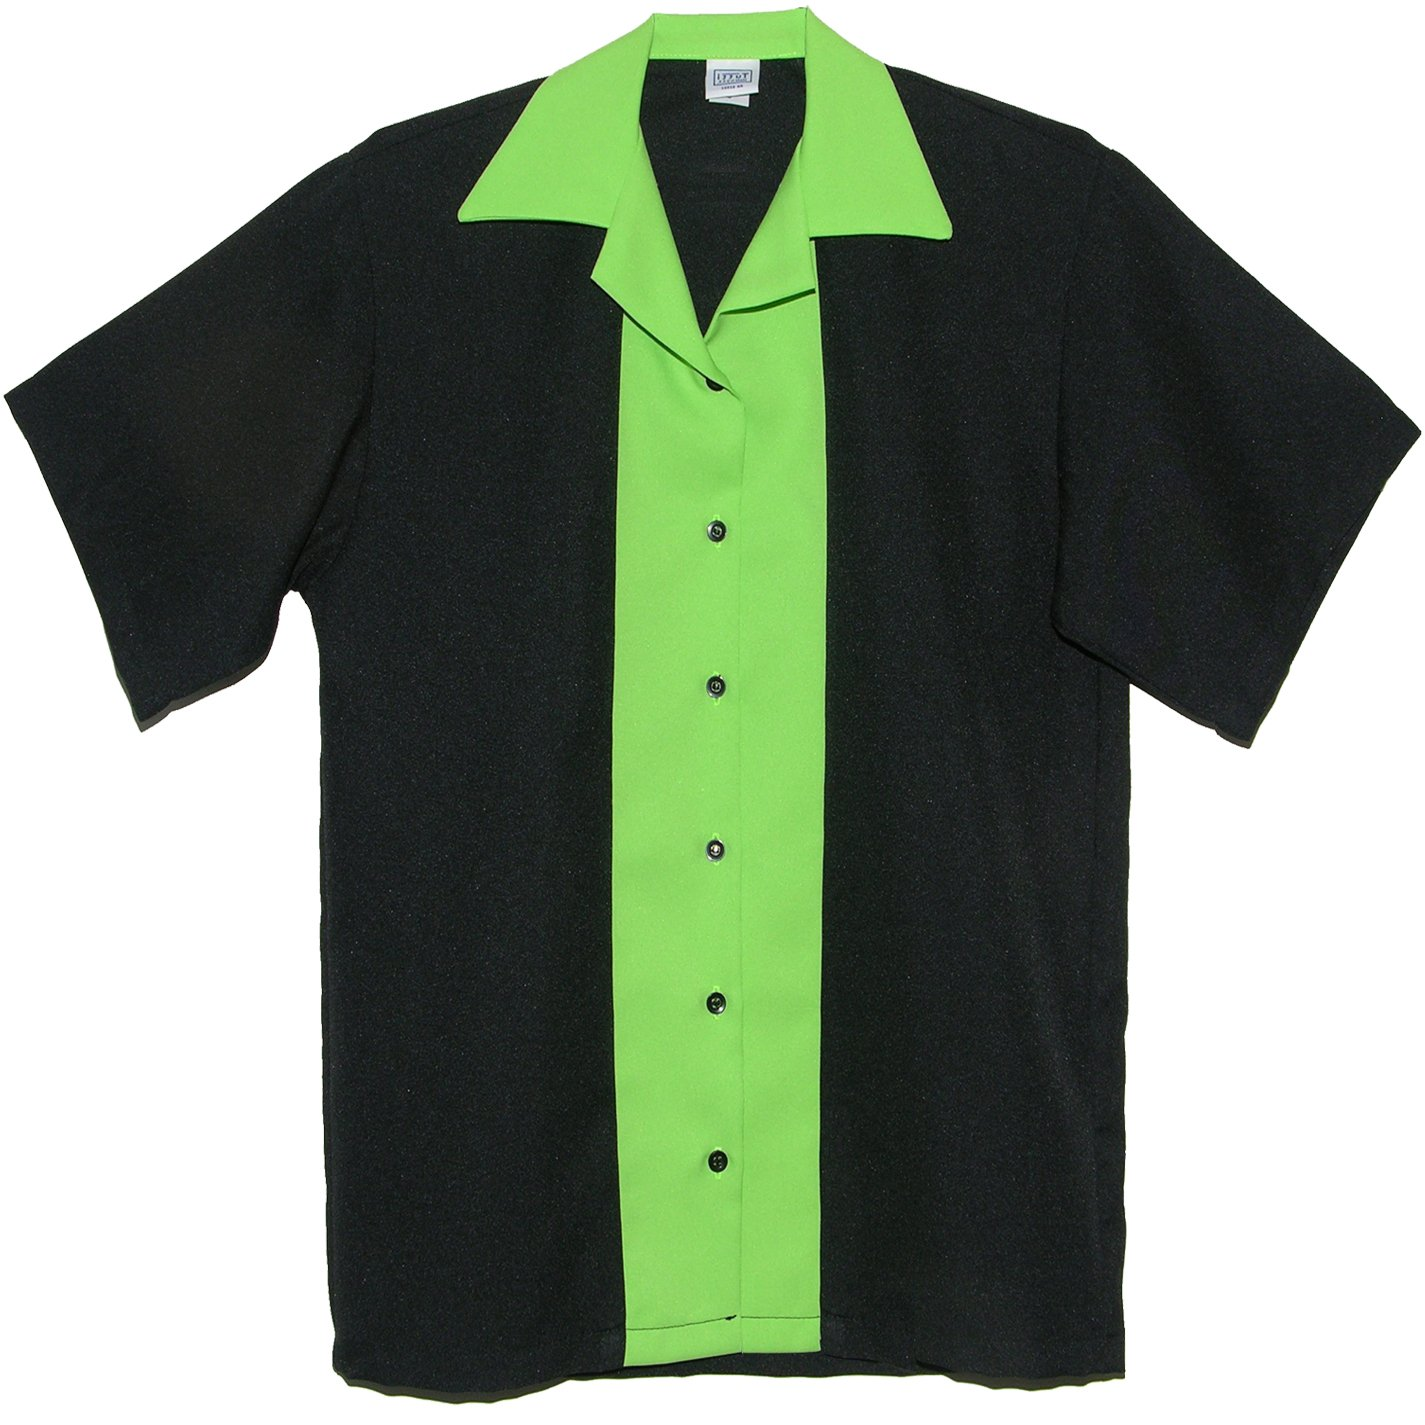 Tutti Ladies Retro Bowling Shirt 50's Style ~ Classic 57 Womens Bowling Shirts (Small) Lime Green by Tutti